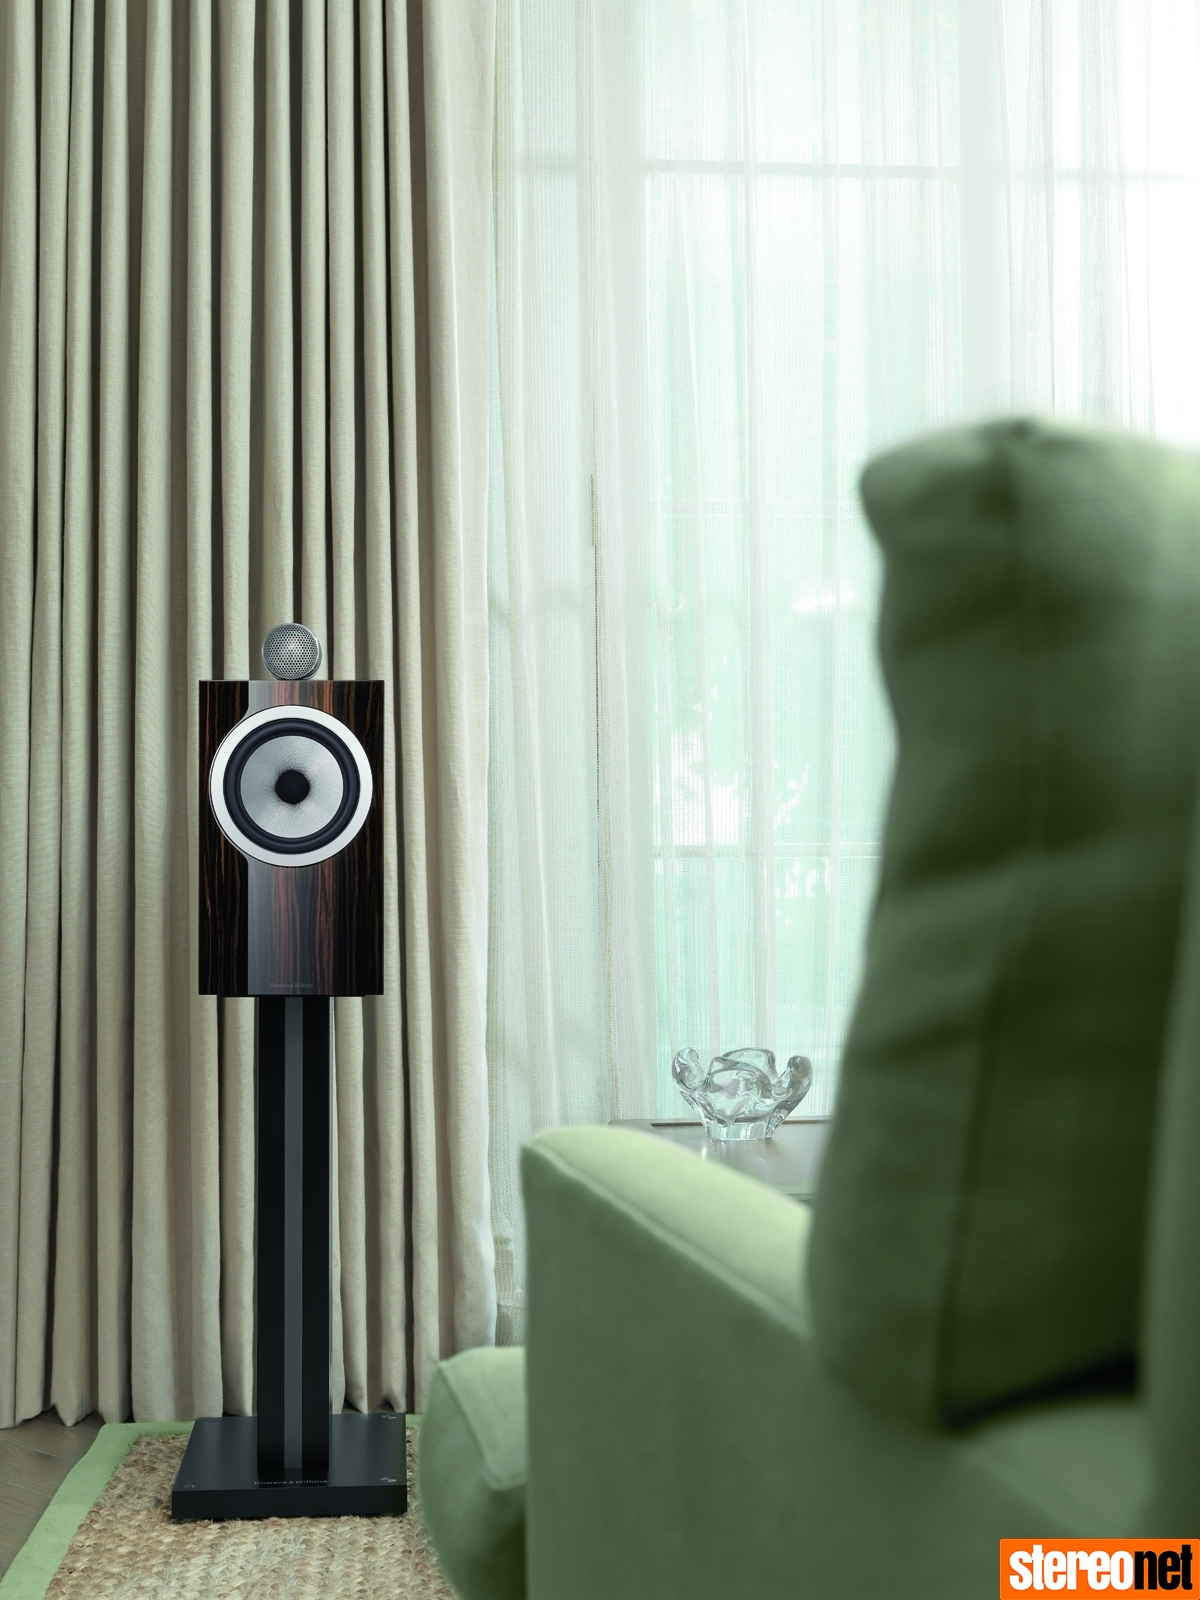 Bowers & Wilkins 705 Signature Review